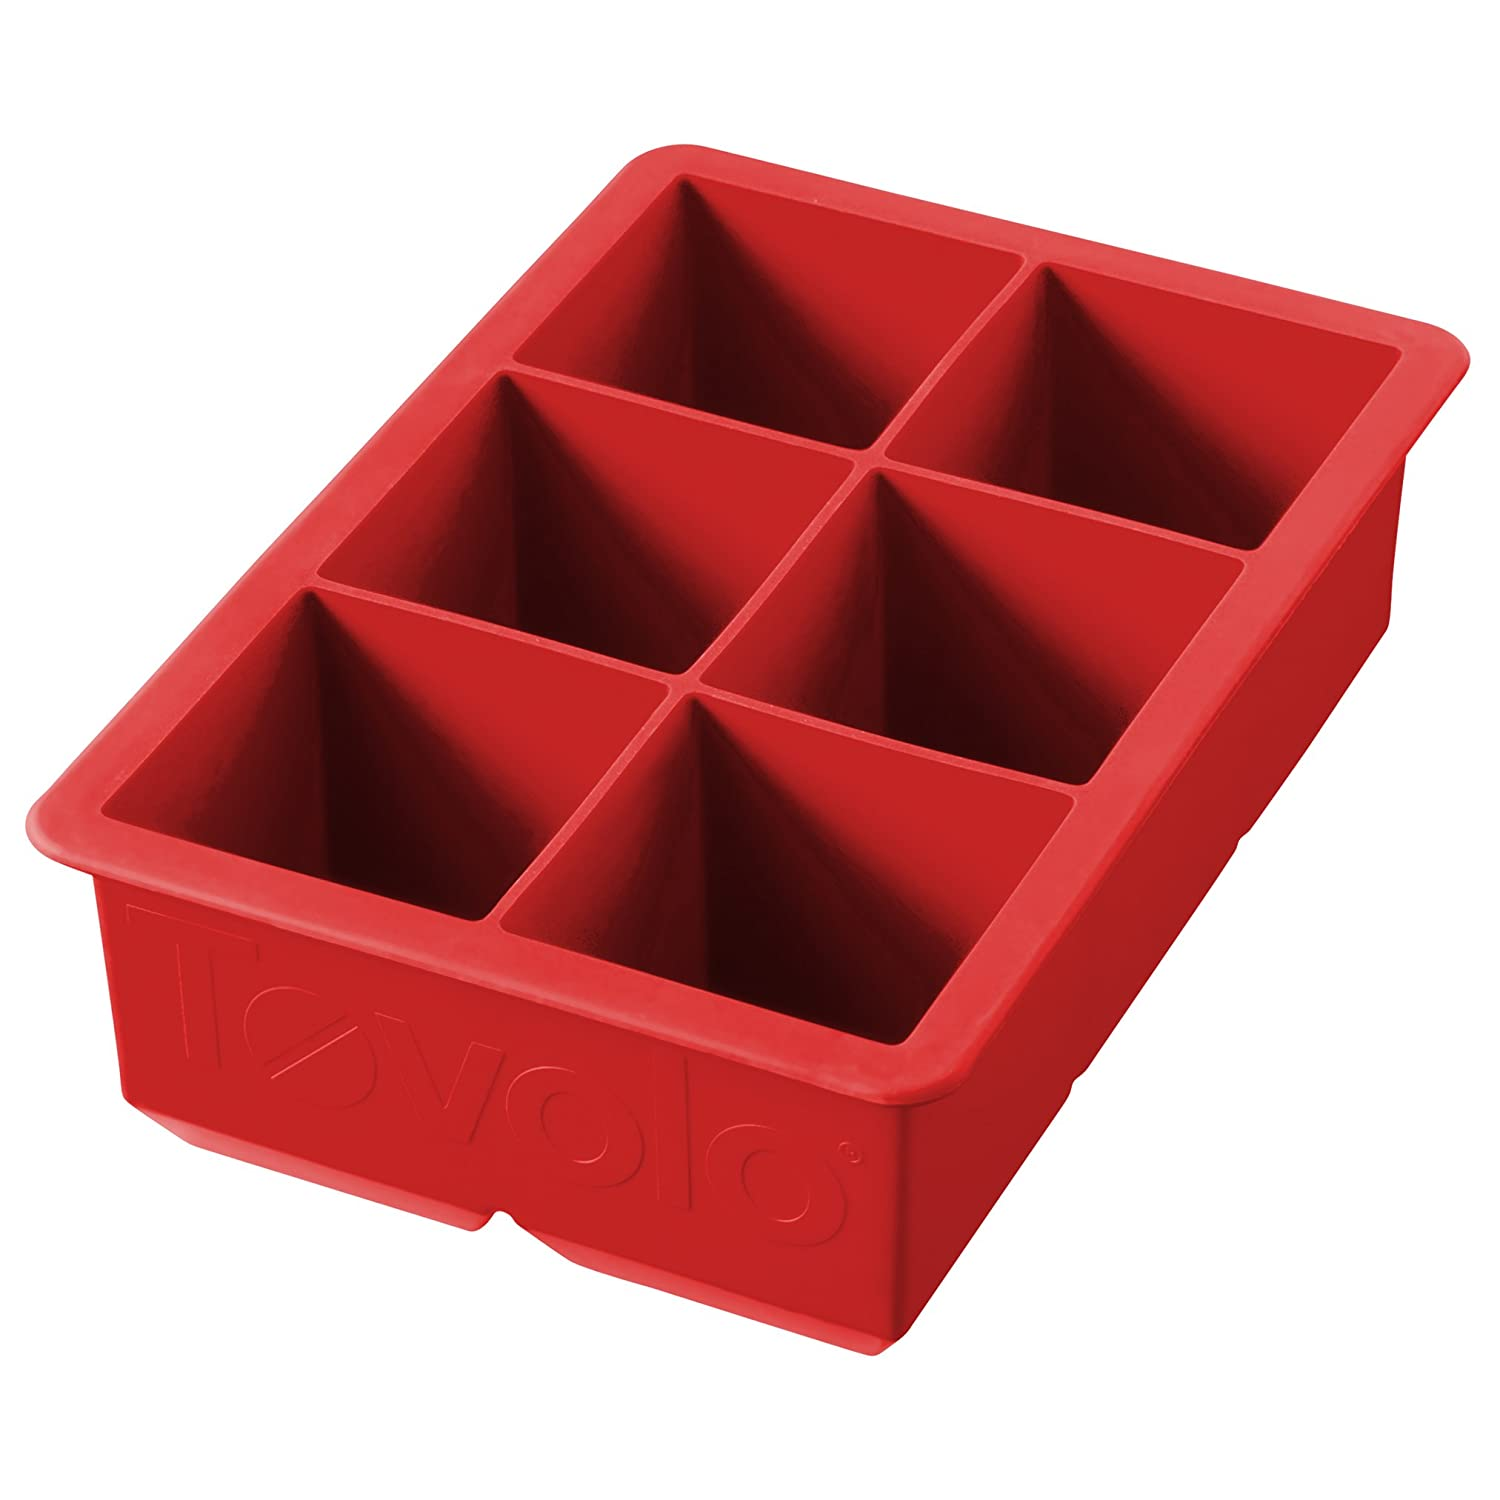 Tovolo King Cube Ice Trays - Candy Apple